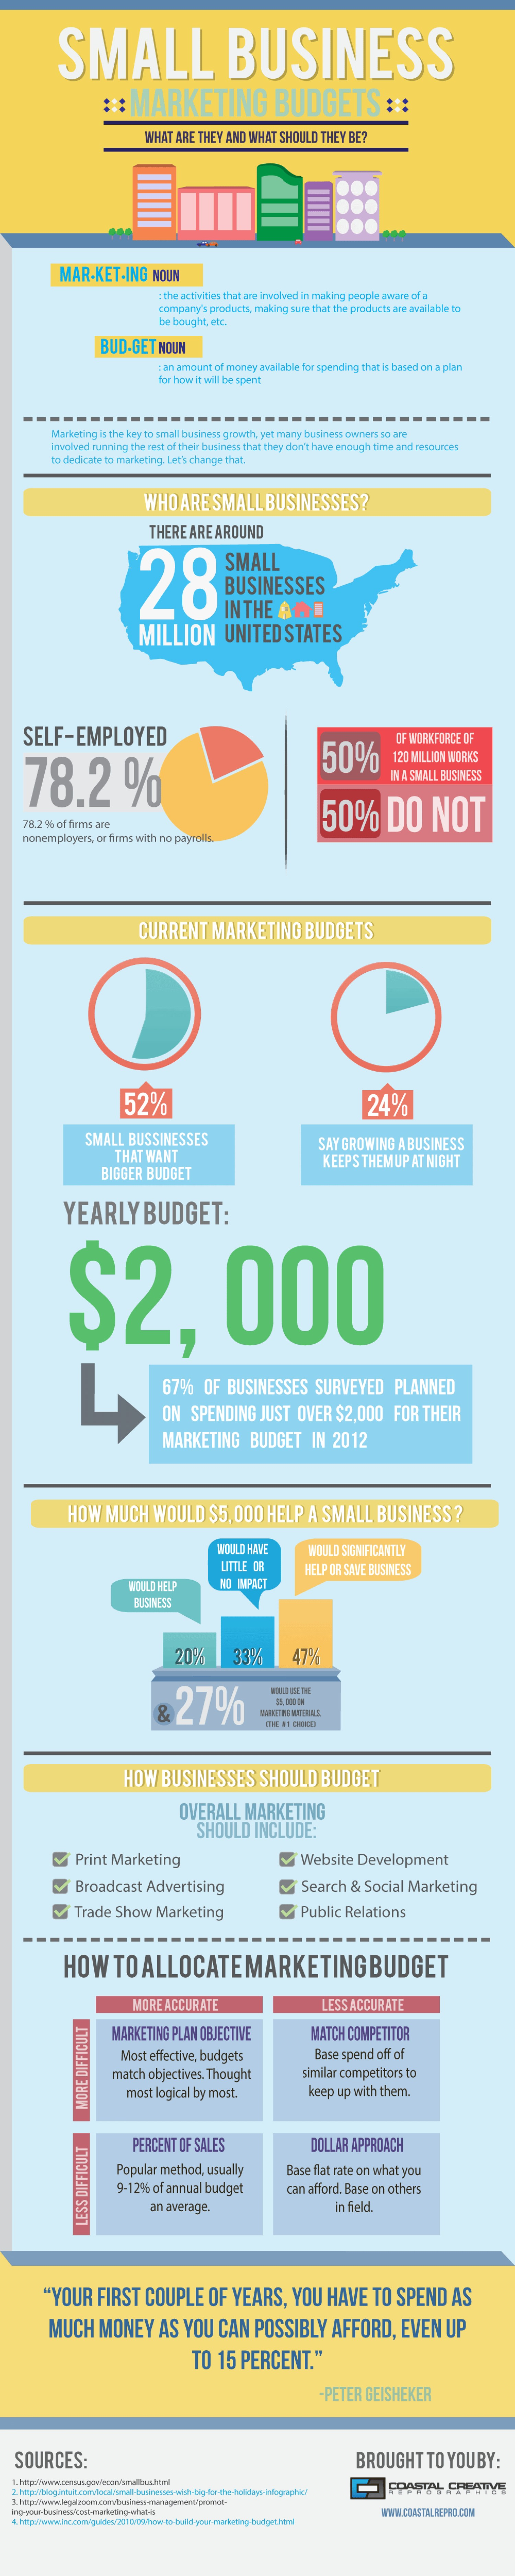 Small business predictions and marketing budget for 2013